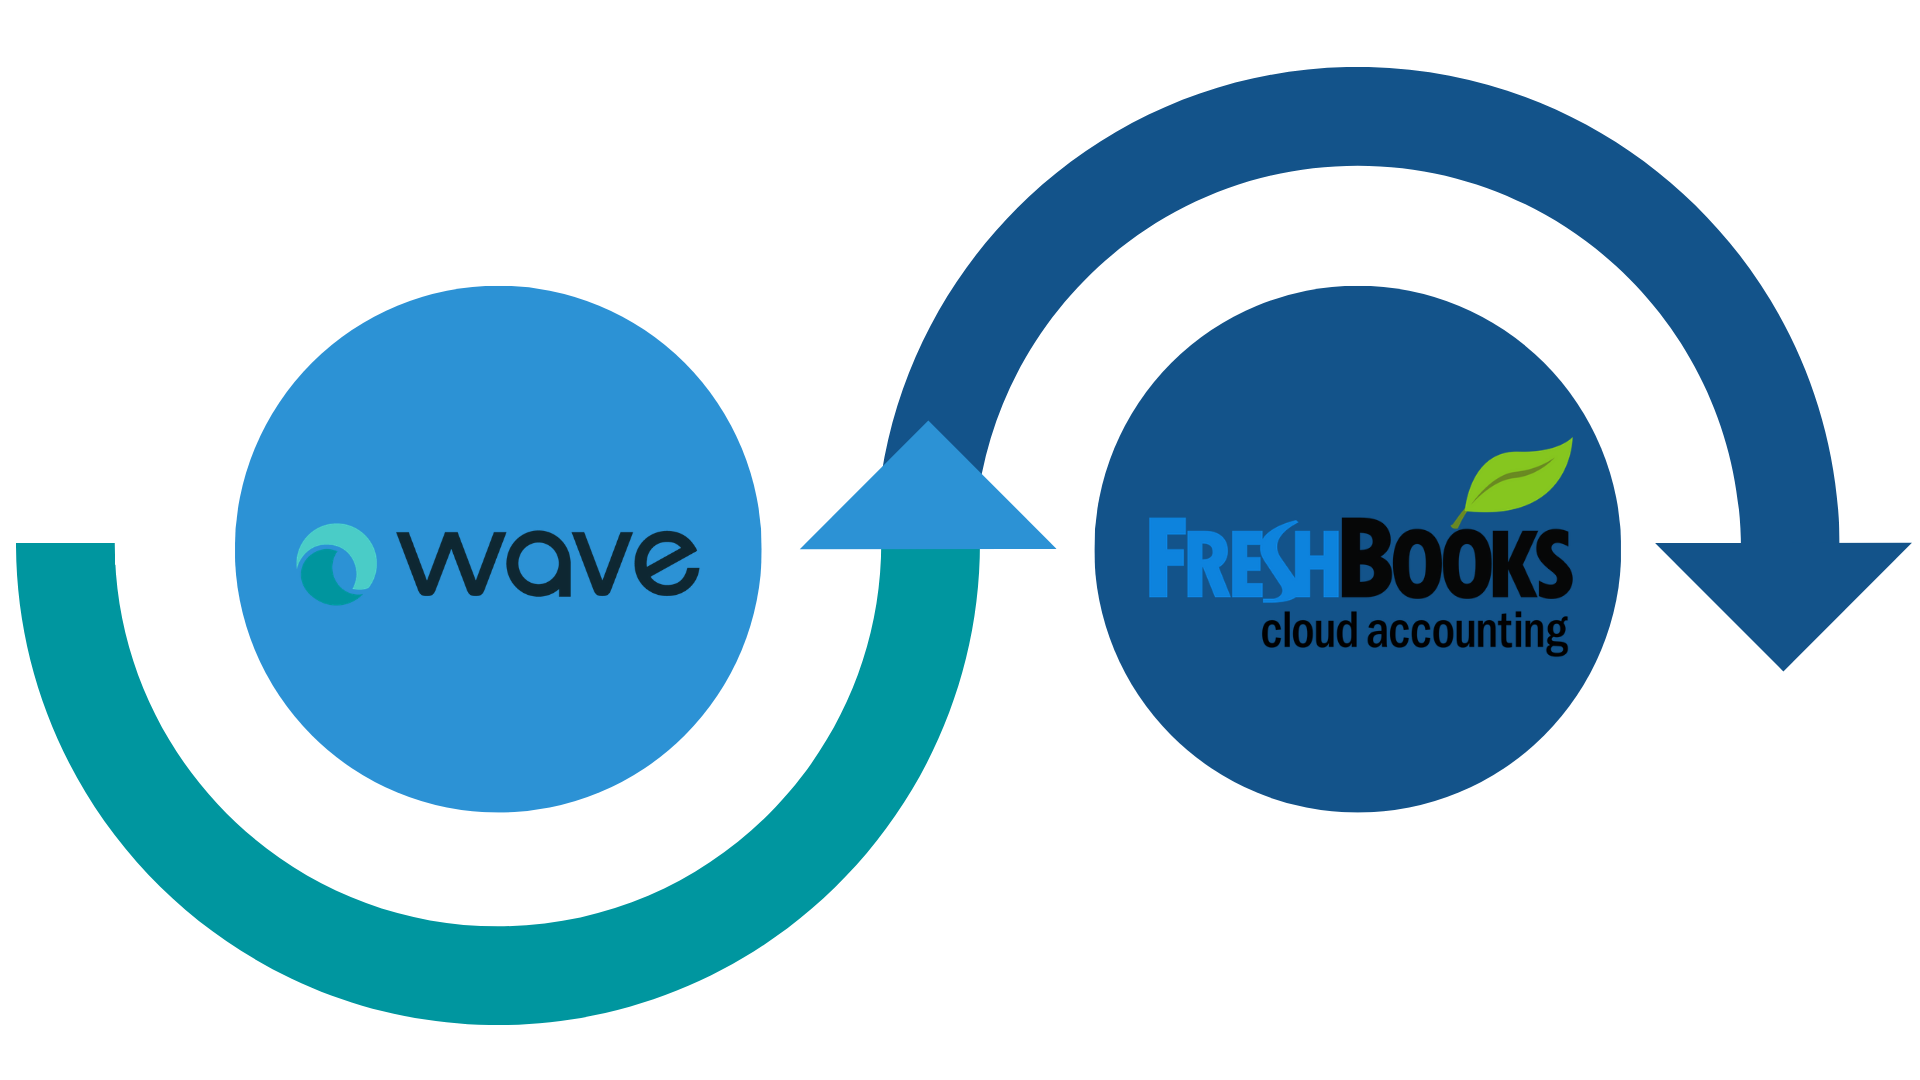 What all data shall be migrated from Wave to FreshBooks